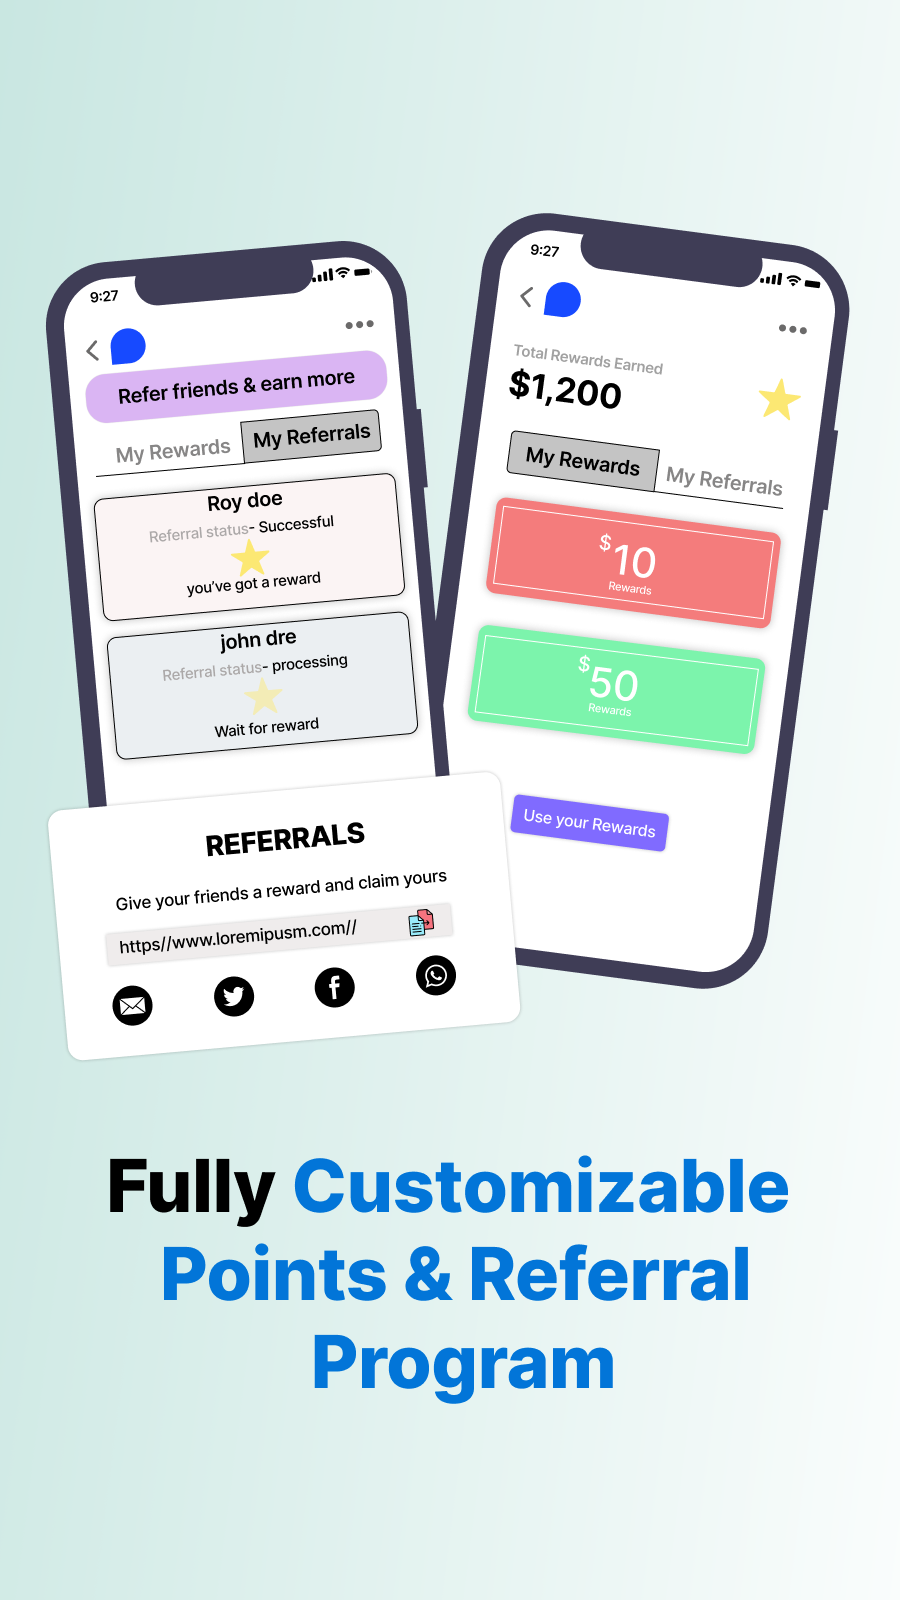 Your brand, your loyalty and rewards program. Fully customizable